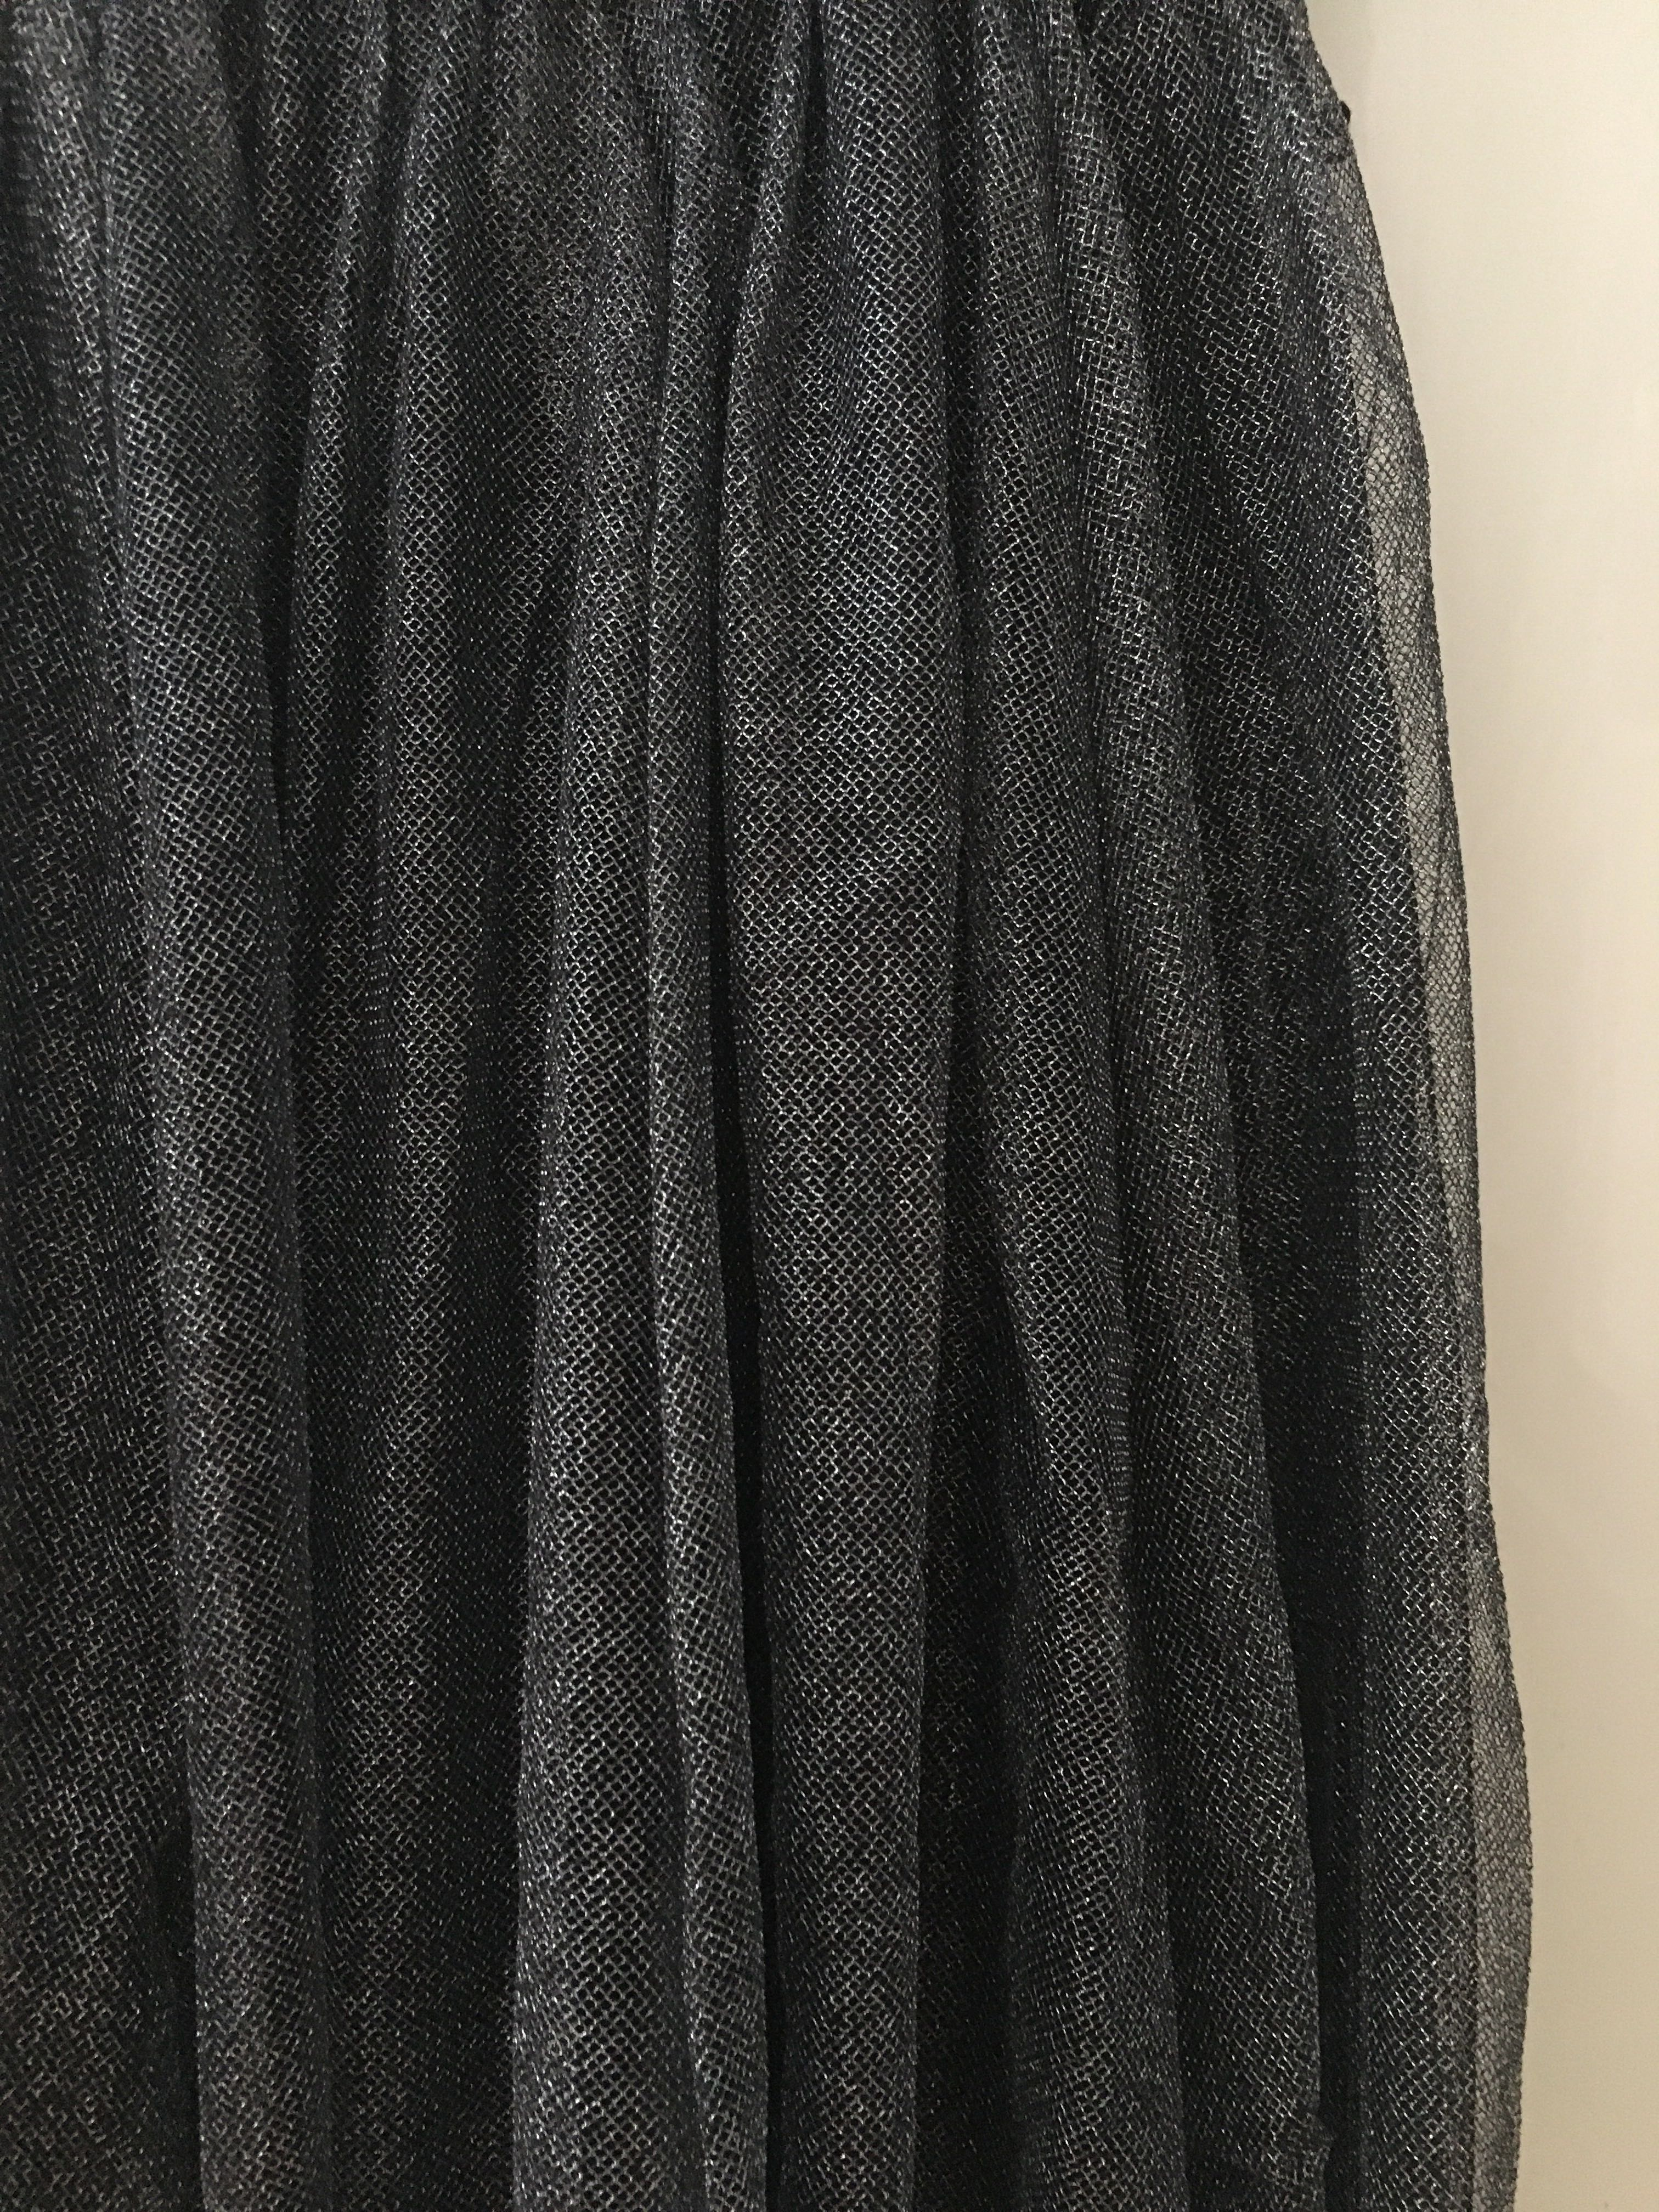 19ef31d85 Girl Dark Grey sparkling Party Dress, Babies & Kids, Girls' Apparel, 8 to  12 Years on Carousell